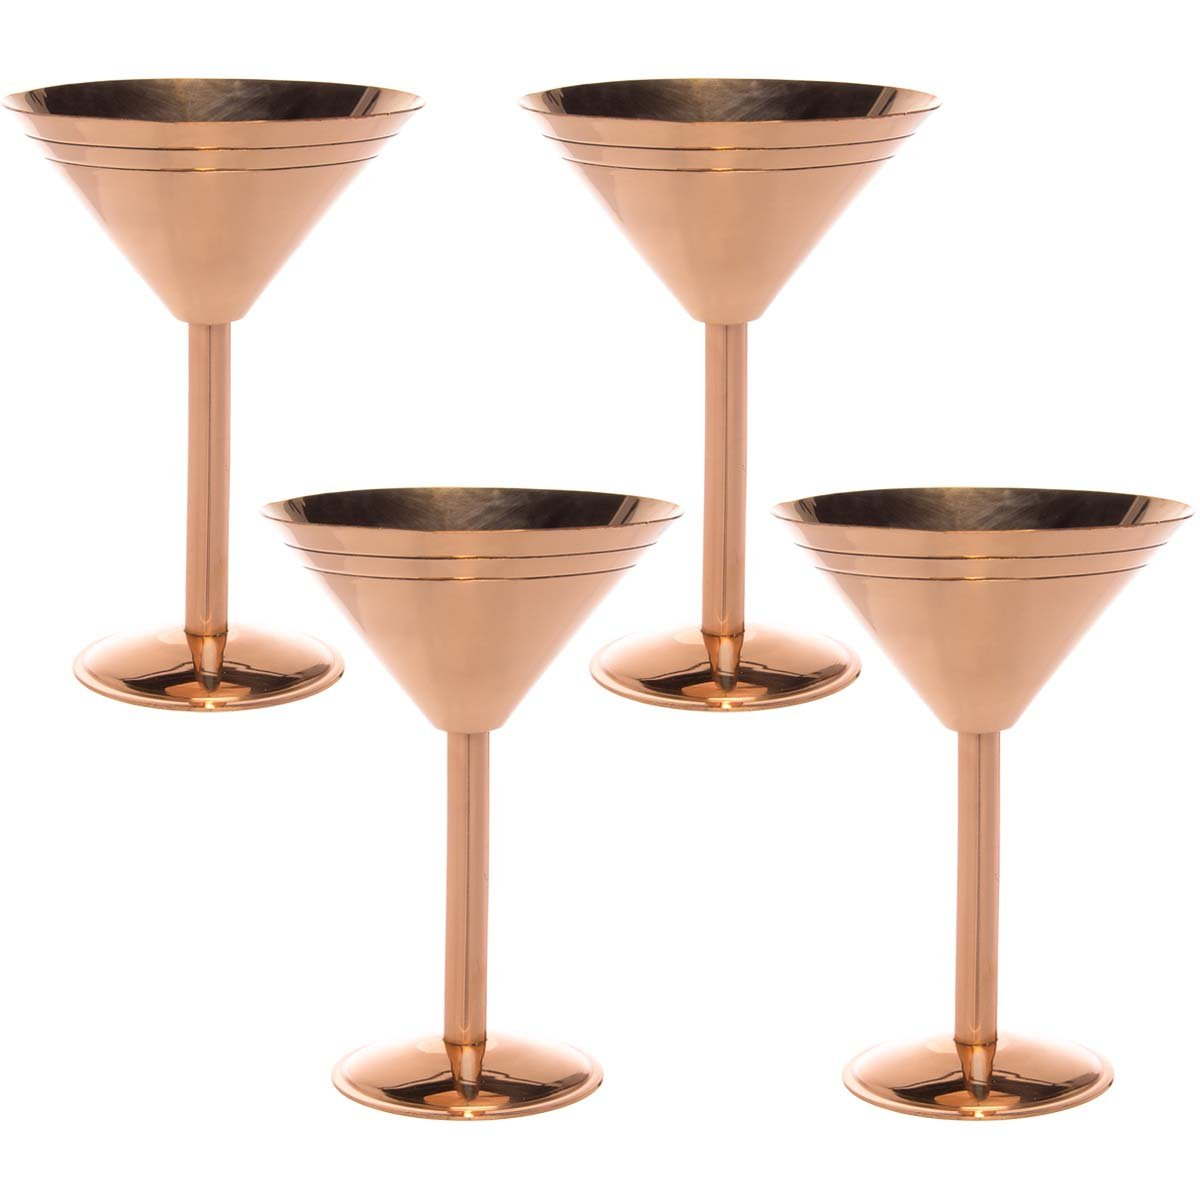 Old Dutch (4 Pack) Solid Copper Martini Glasses 9oz Vintage Cocktail Glasses Set Party Drinking Cups